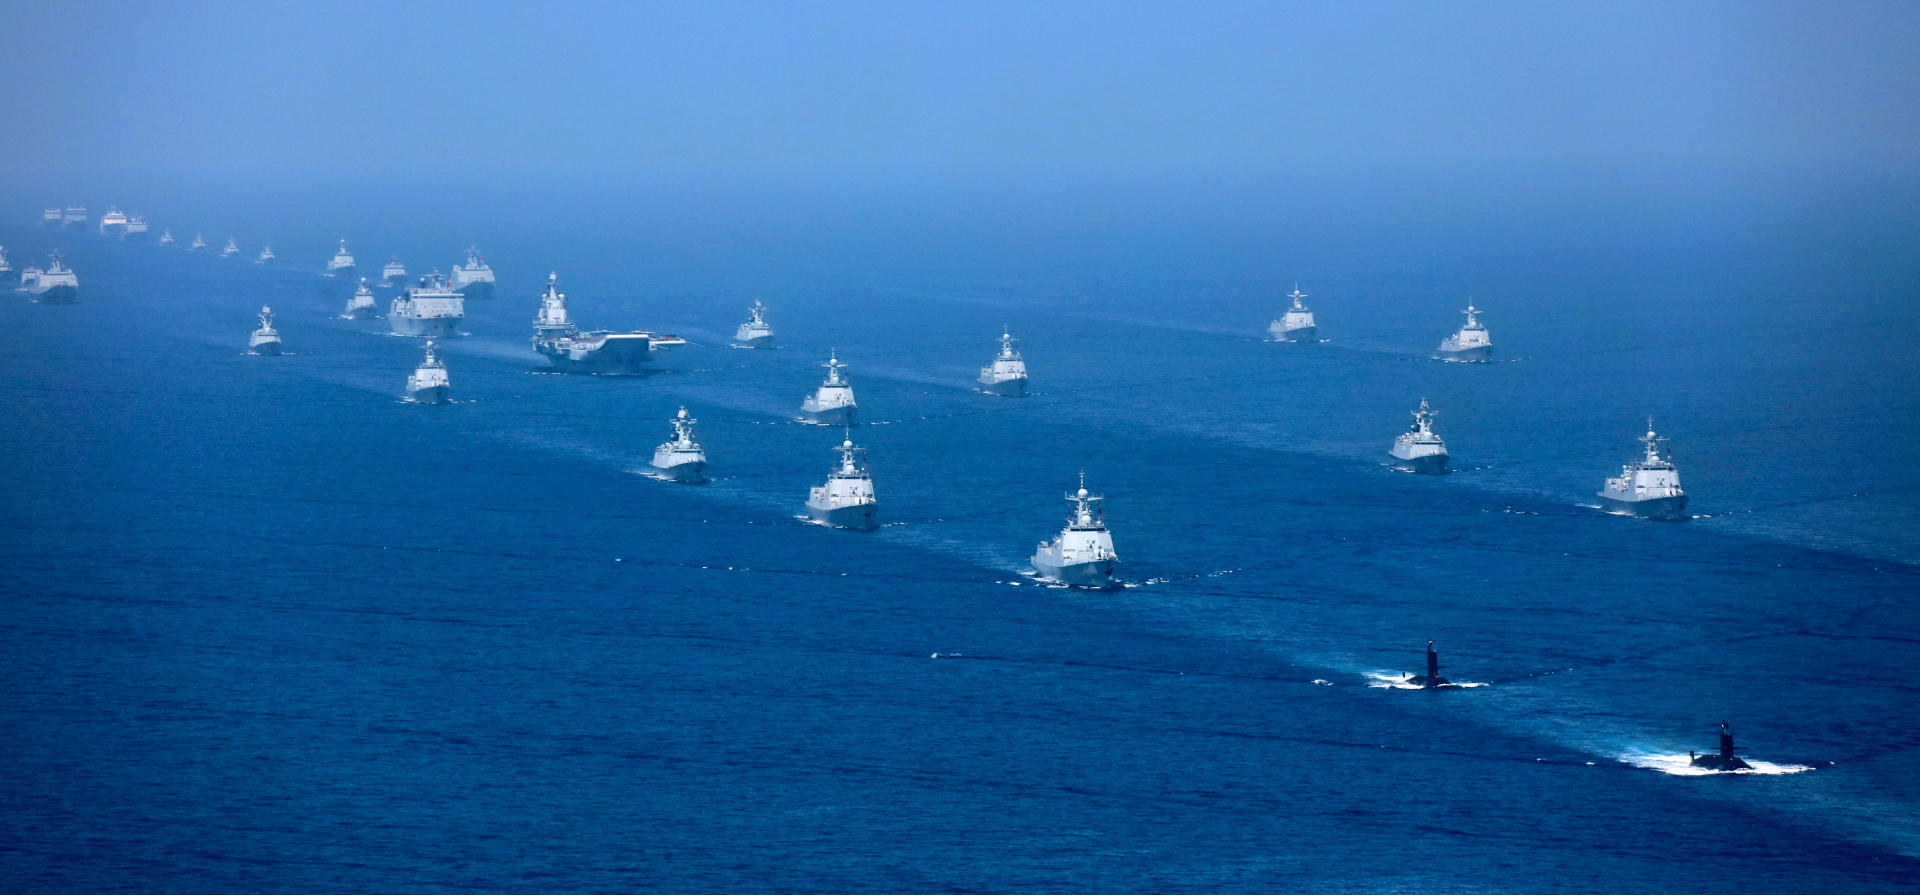 China accuses US of 'inciting confrontation' in South China Sea - Fox News